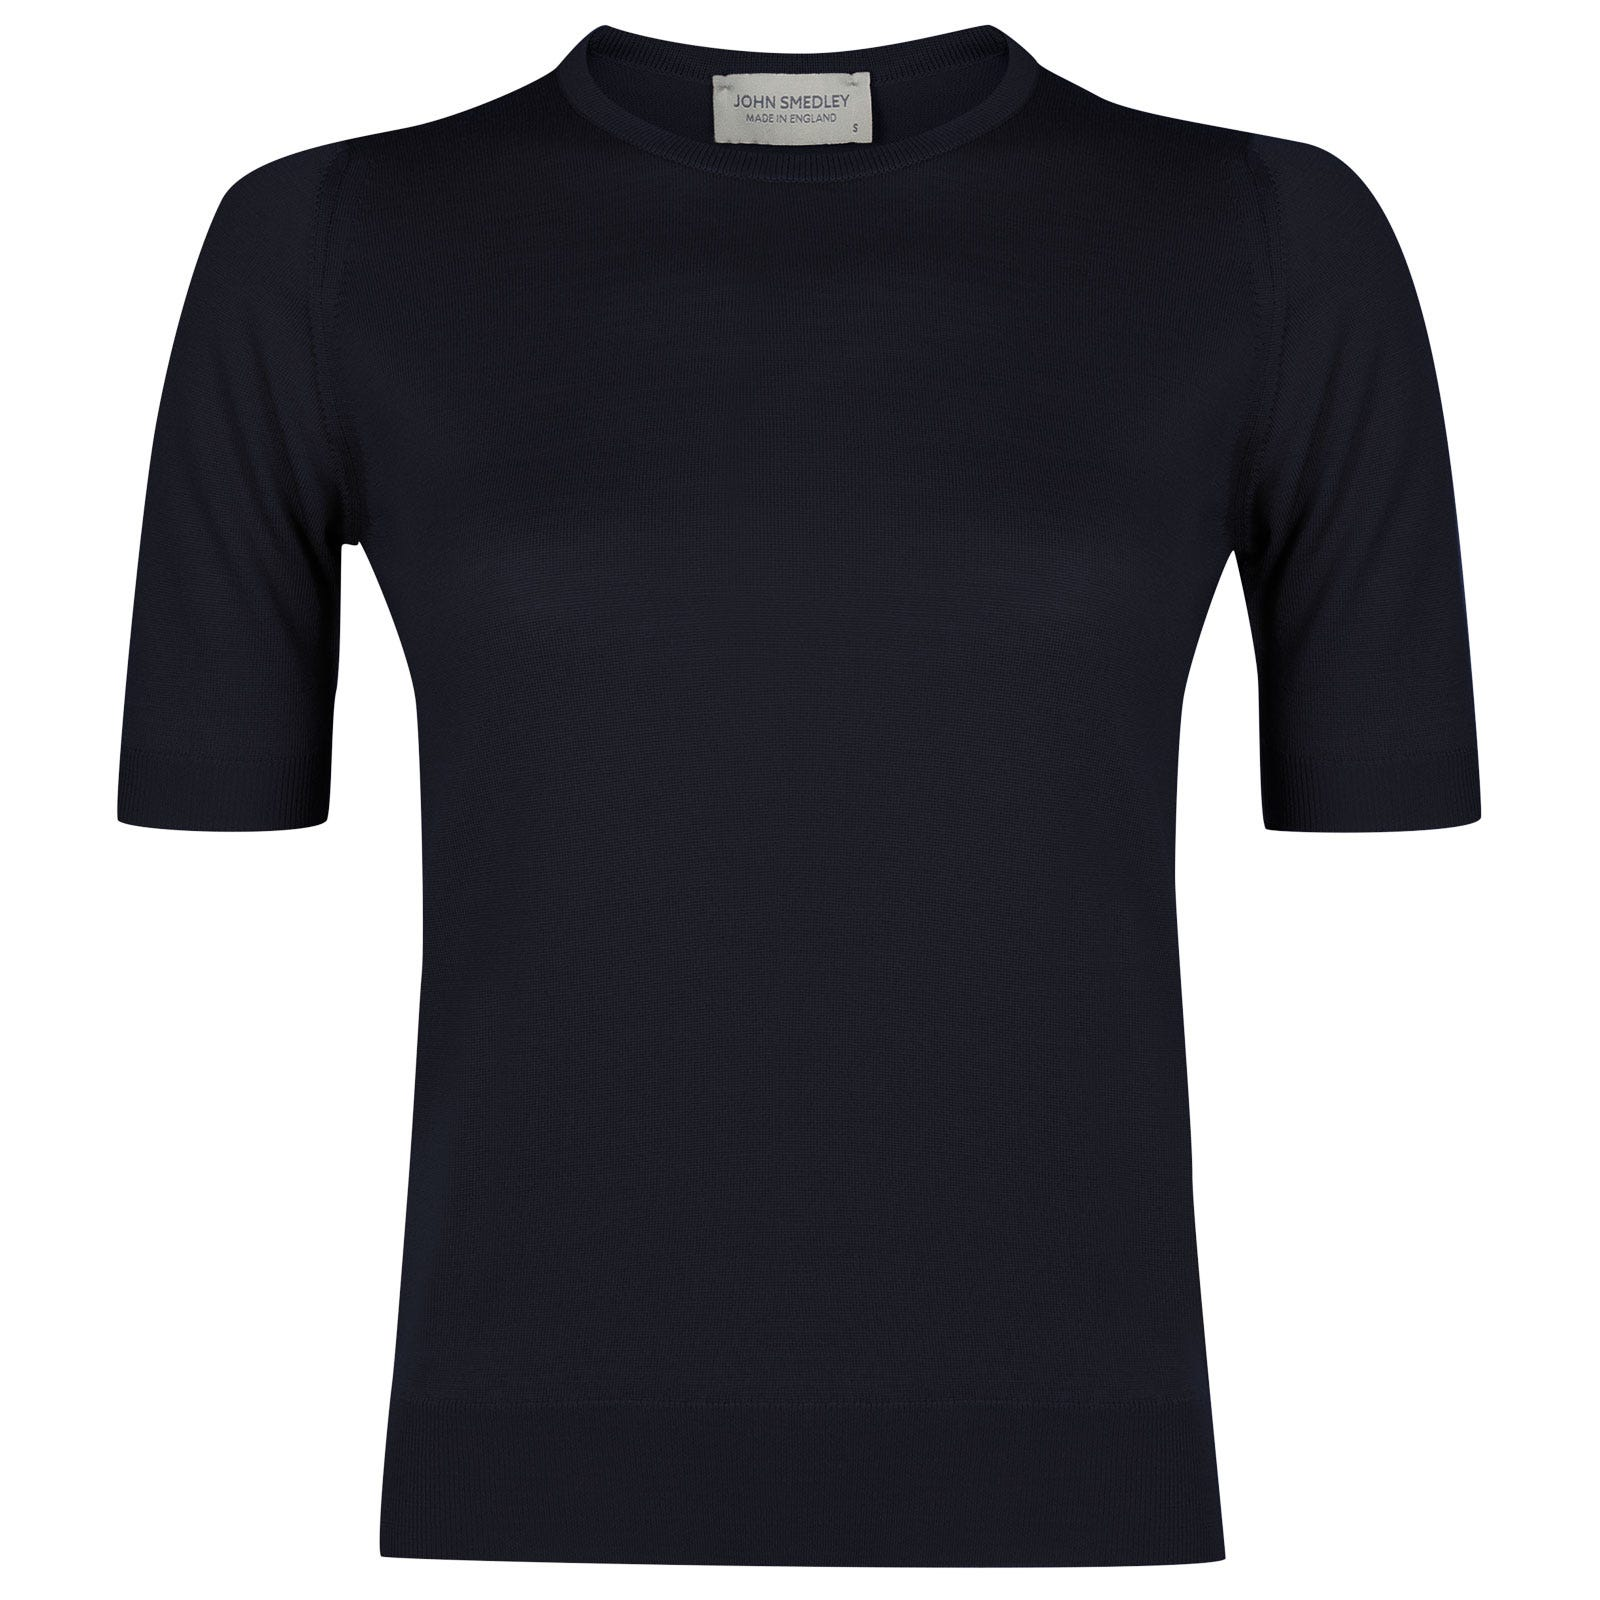 John Smedley trieste Merino Wool Sweater in Midnight-L